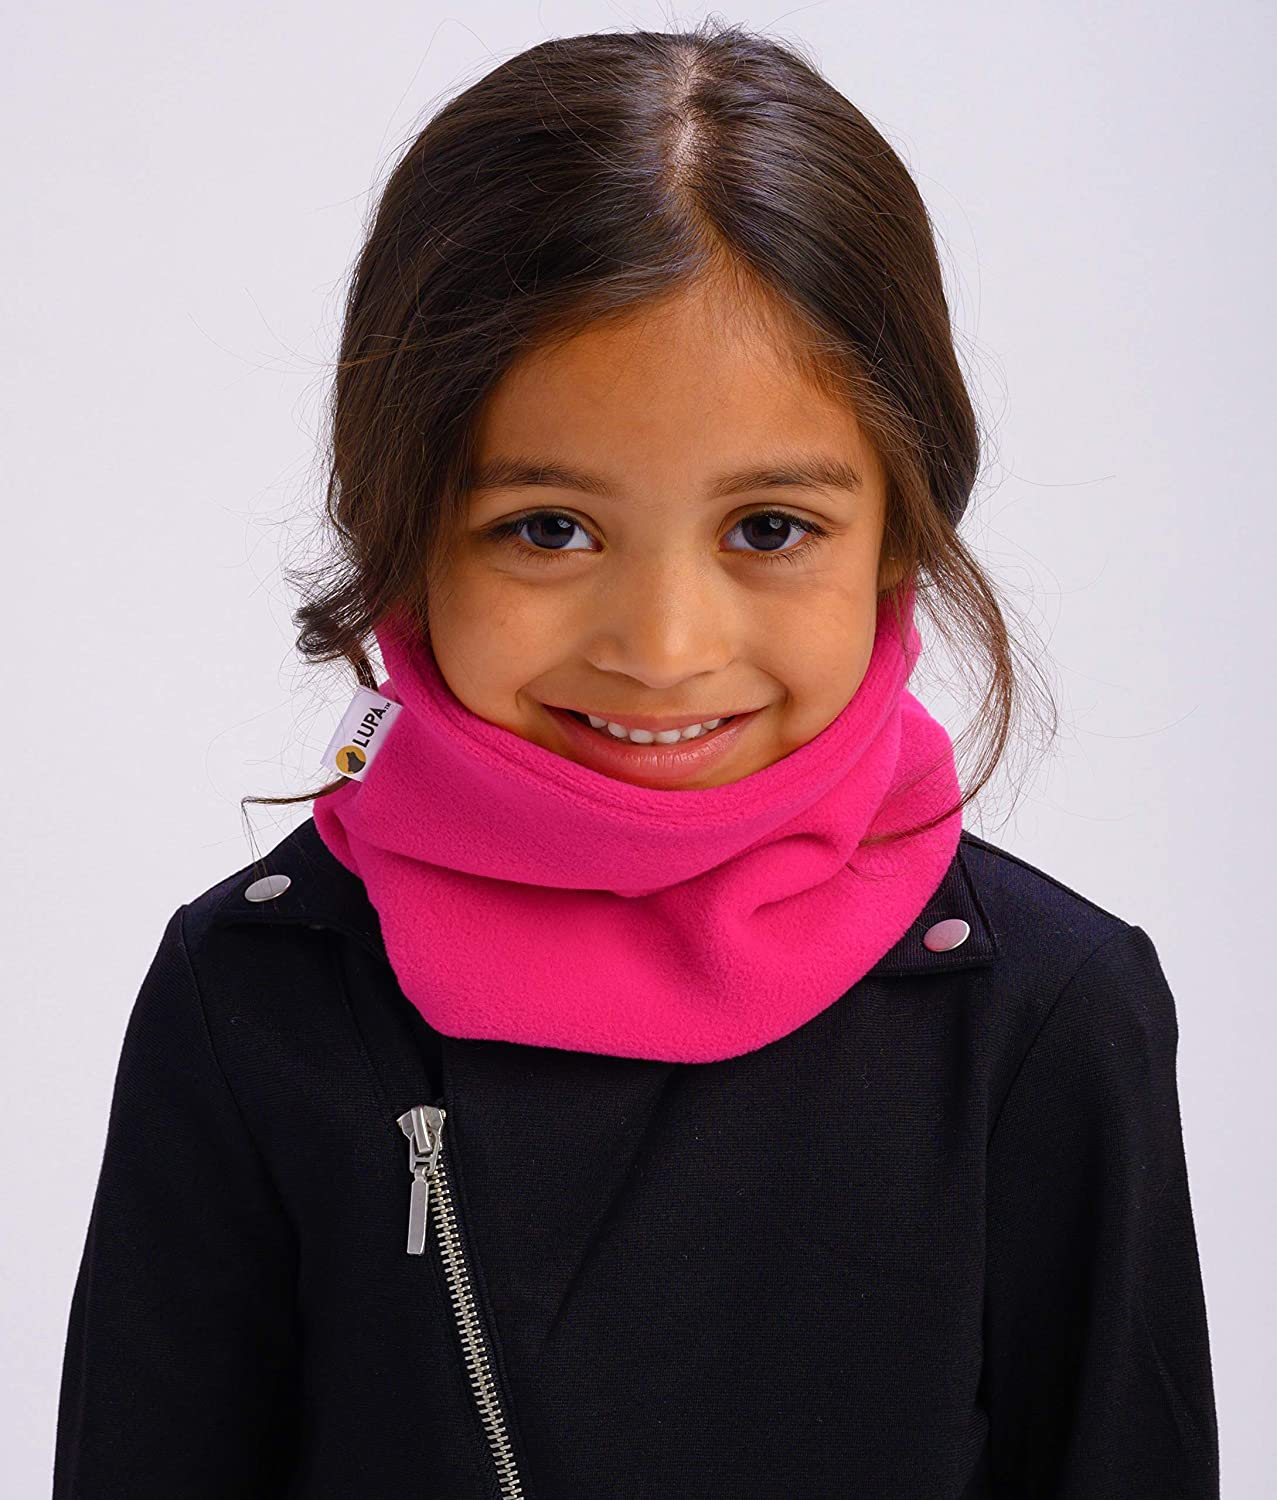 Bright Pink Lupa Kids Canadian Handmade 2-Ply Micro Fleece Neck Warmer//Gaiter